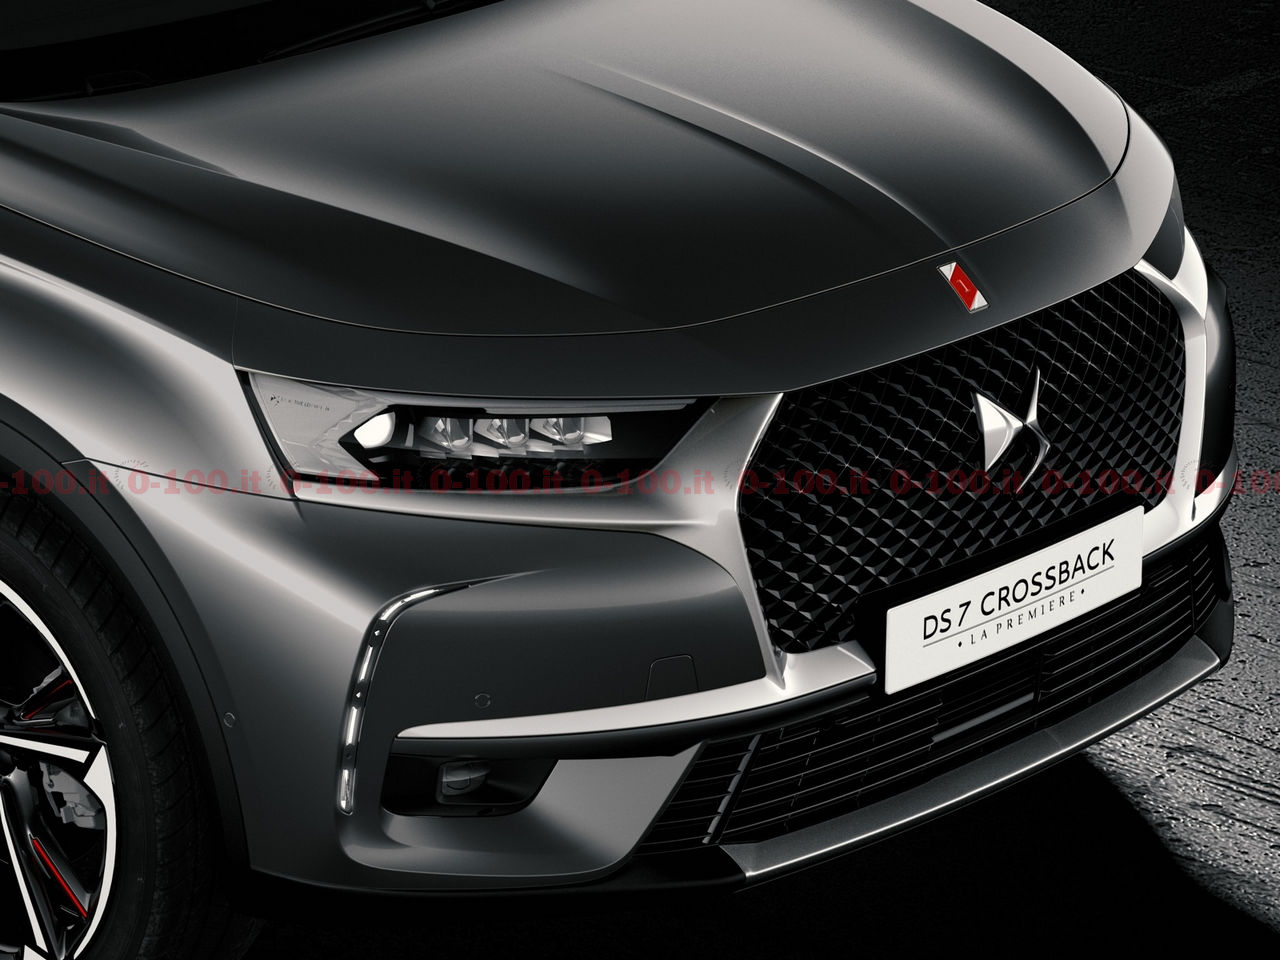 ds7-crossback_lapremiere-2017_0-100_5